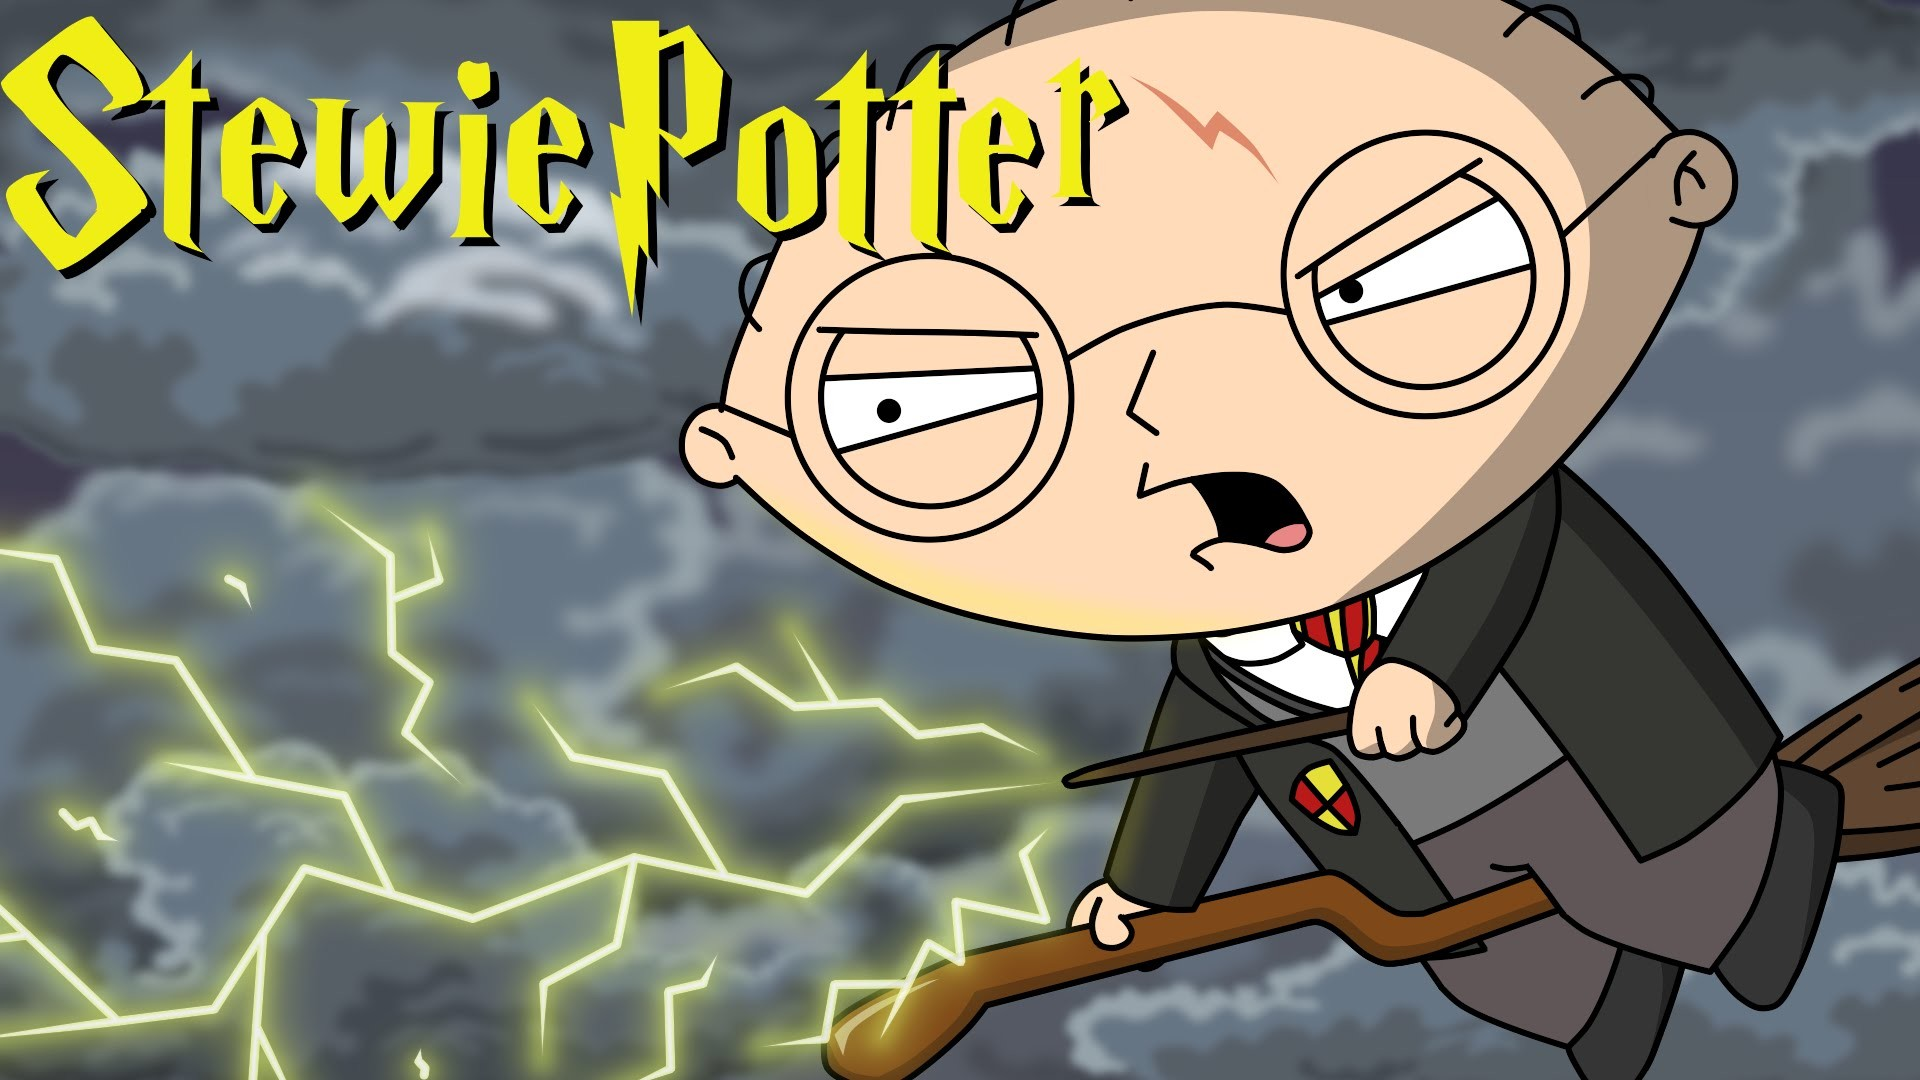 Stewie Potter, A Magical Animated Parody Of Family - Steve Potter Family Guy - HD Wallpaper